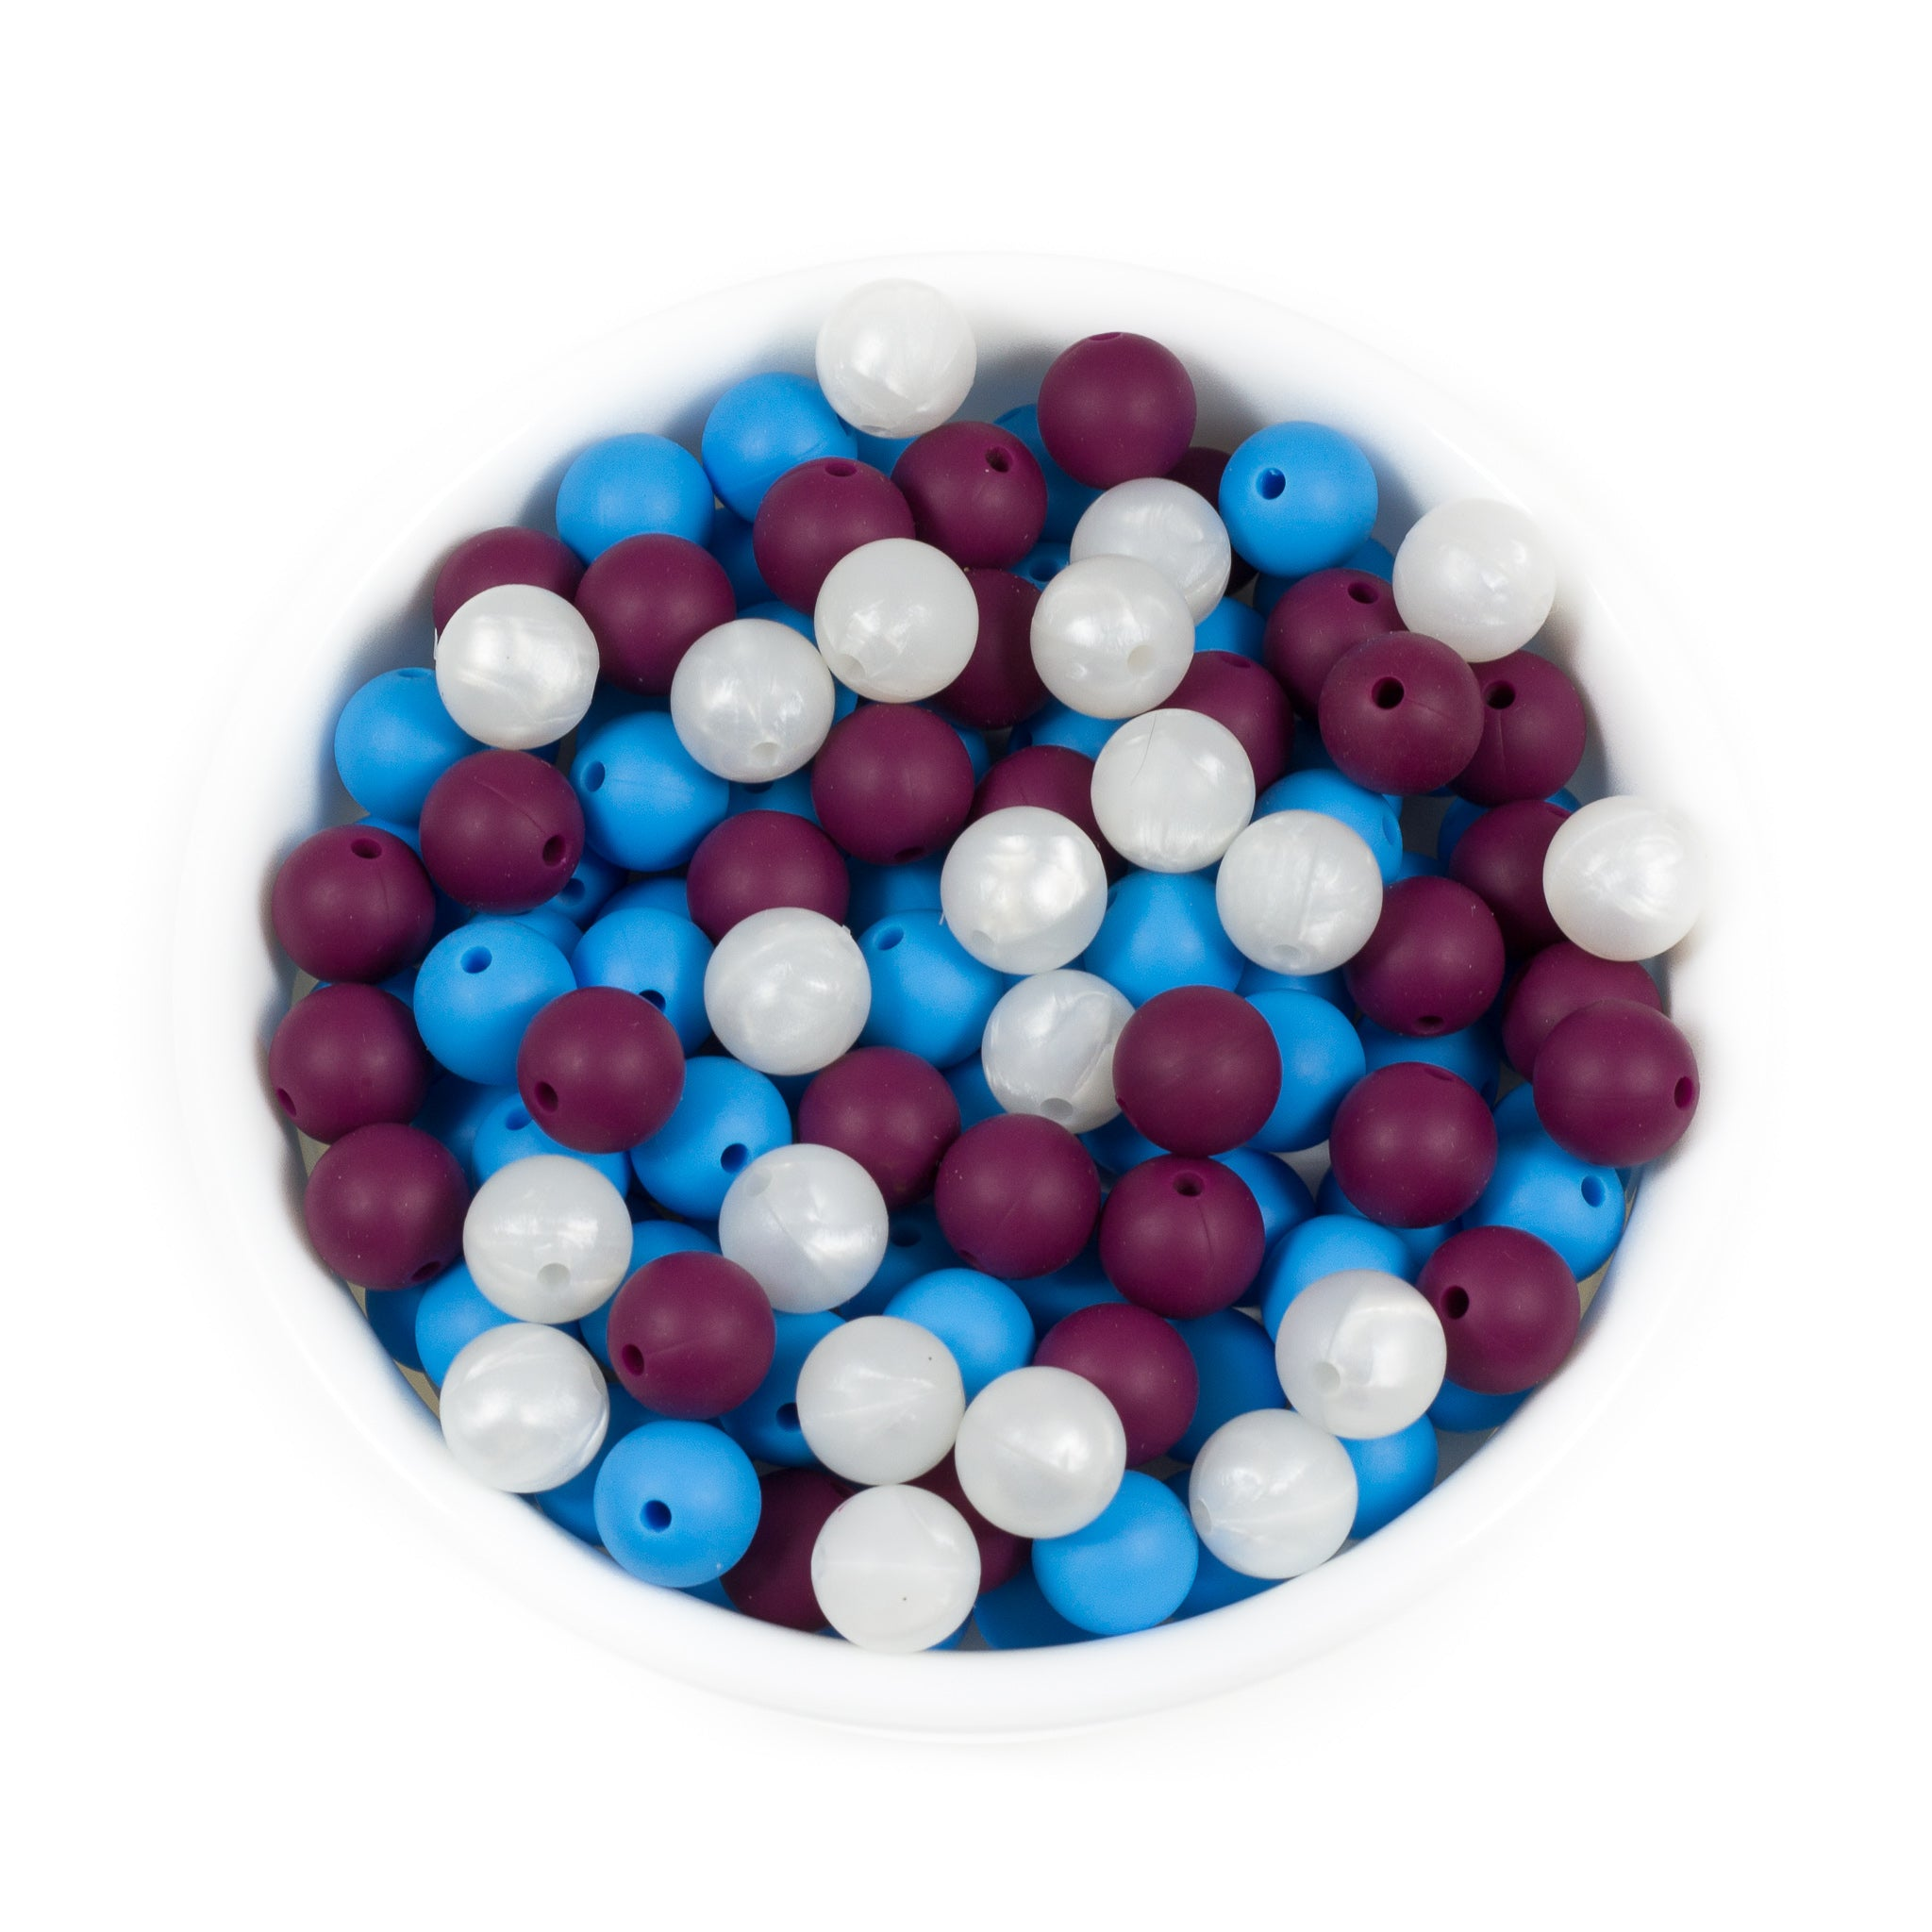 Round 12mm - Chomp Chew Bead Designs - Wholesale Silicone Beads for Teething and DIY Chewelry Making